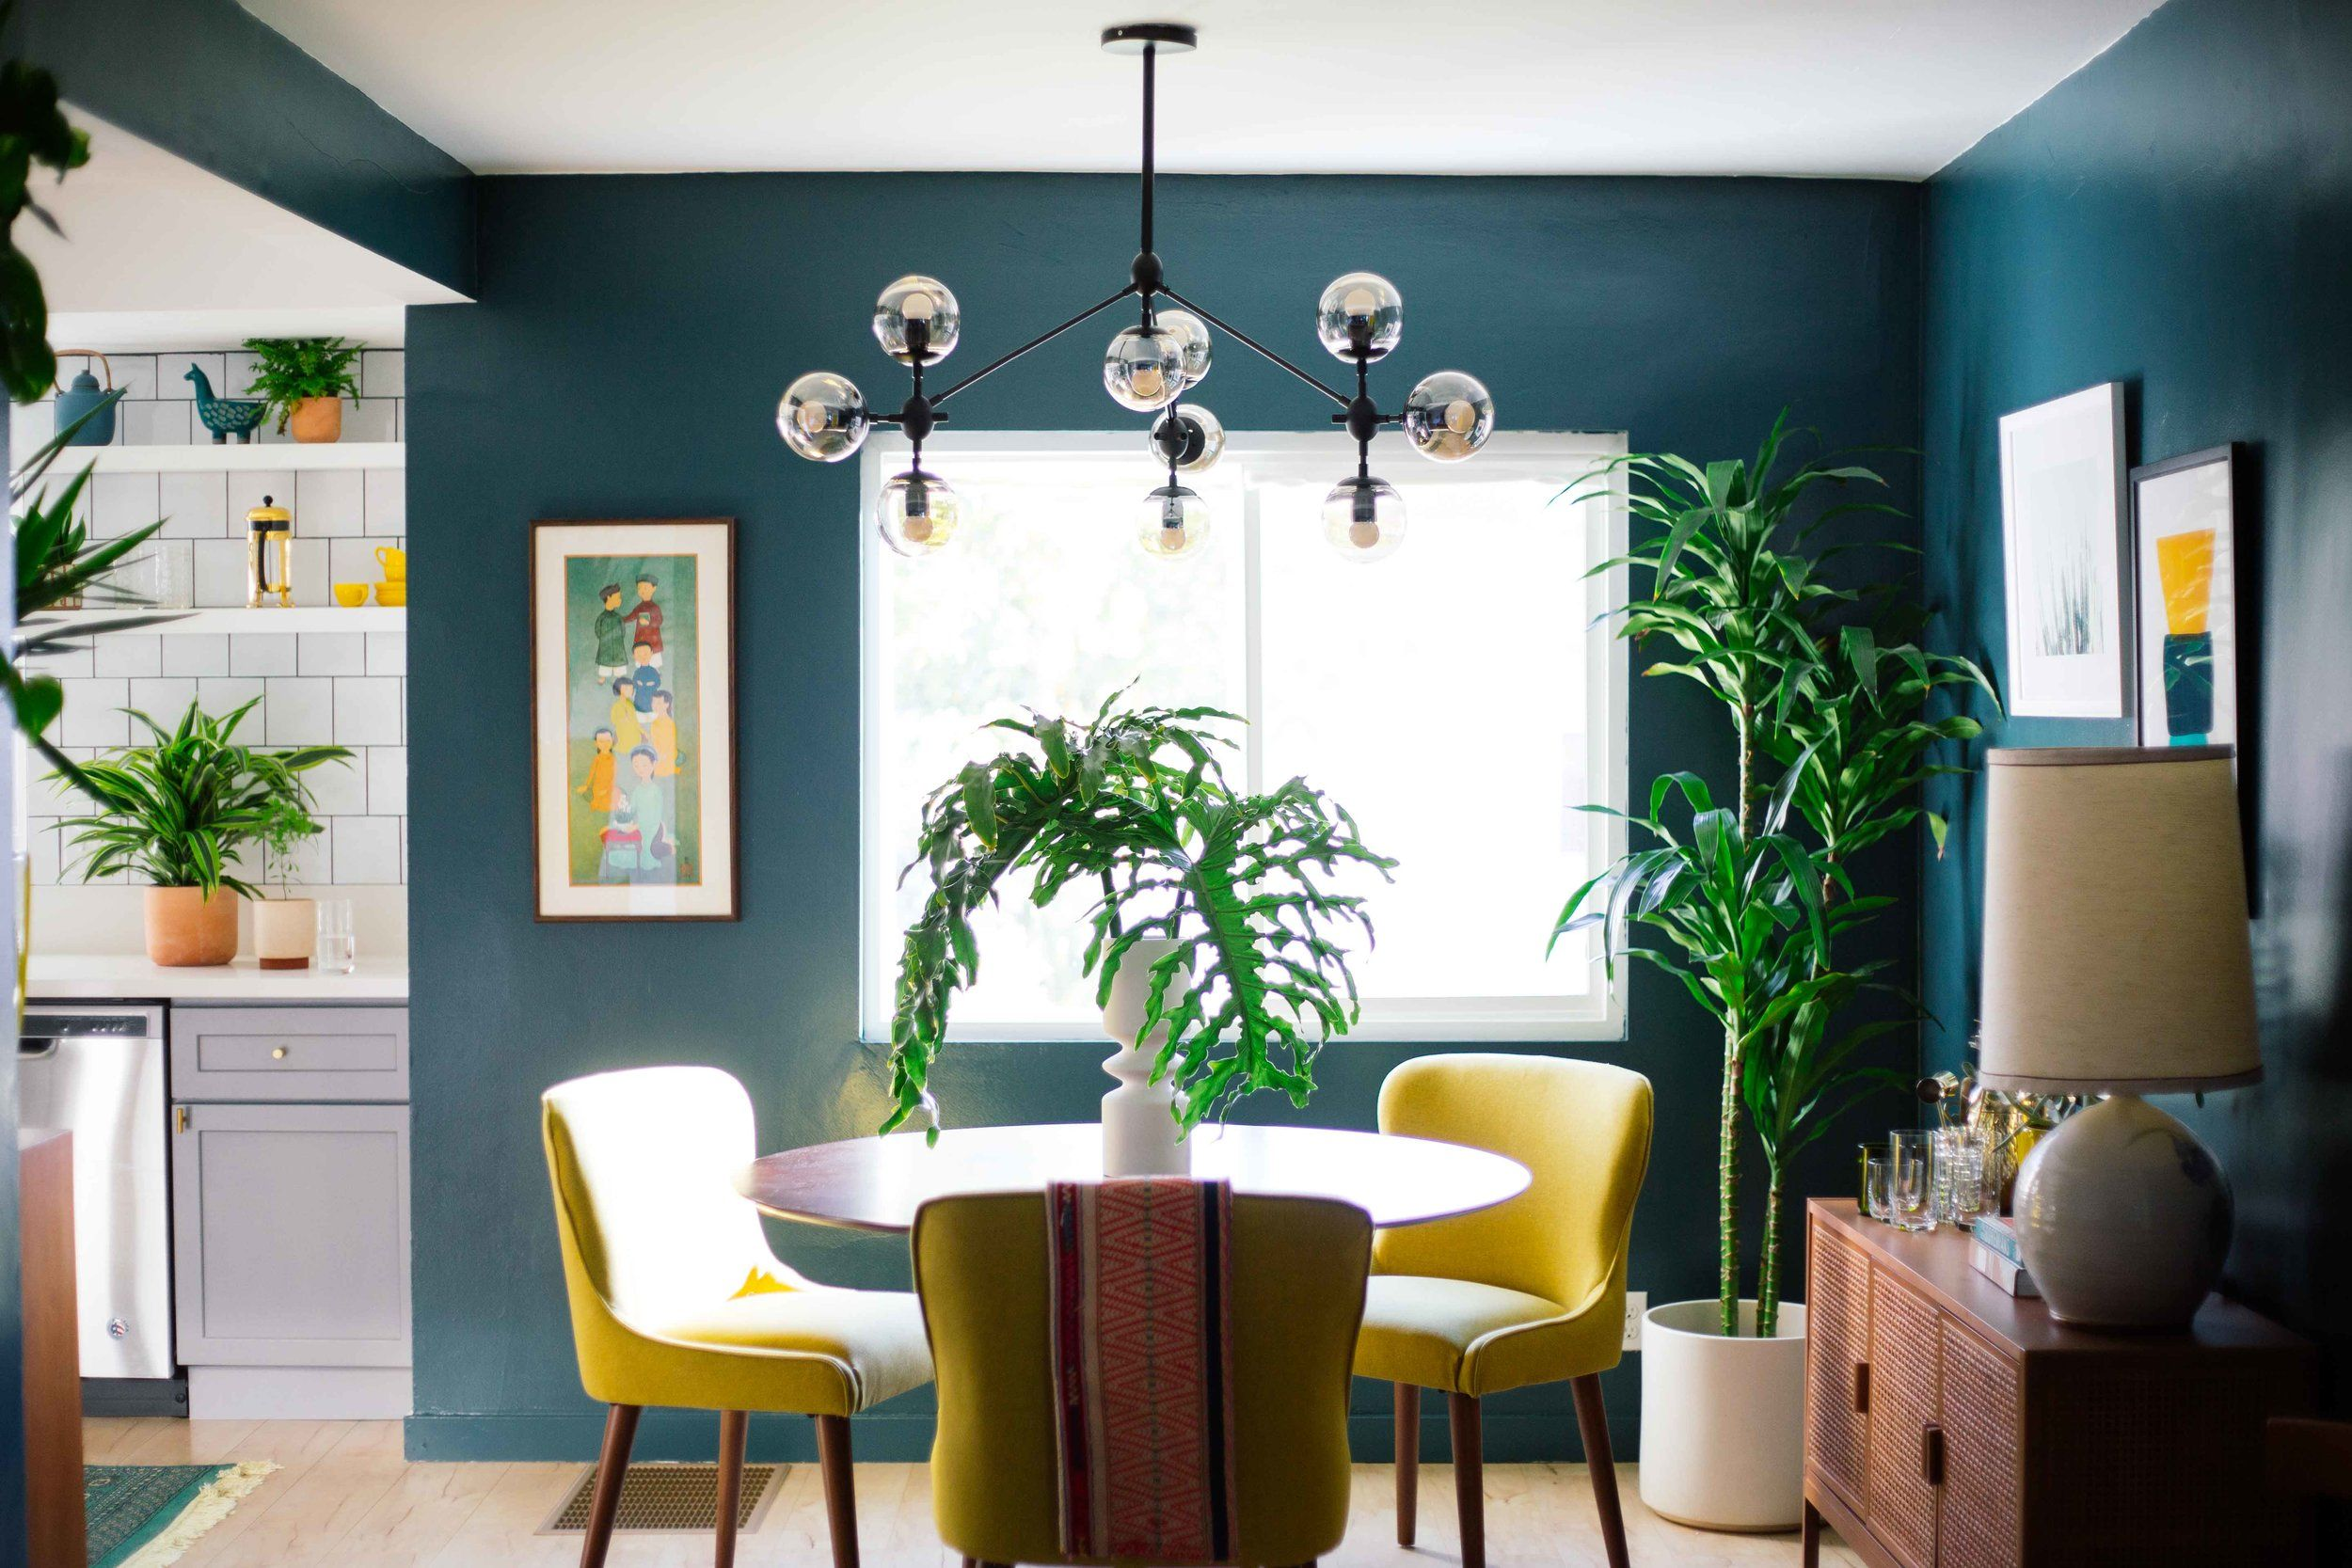 image & 15 Best Colors for Small Rooms - Designer Tips - Advice